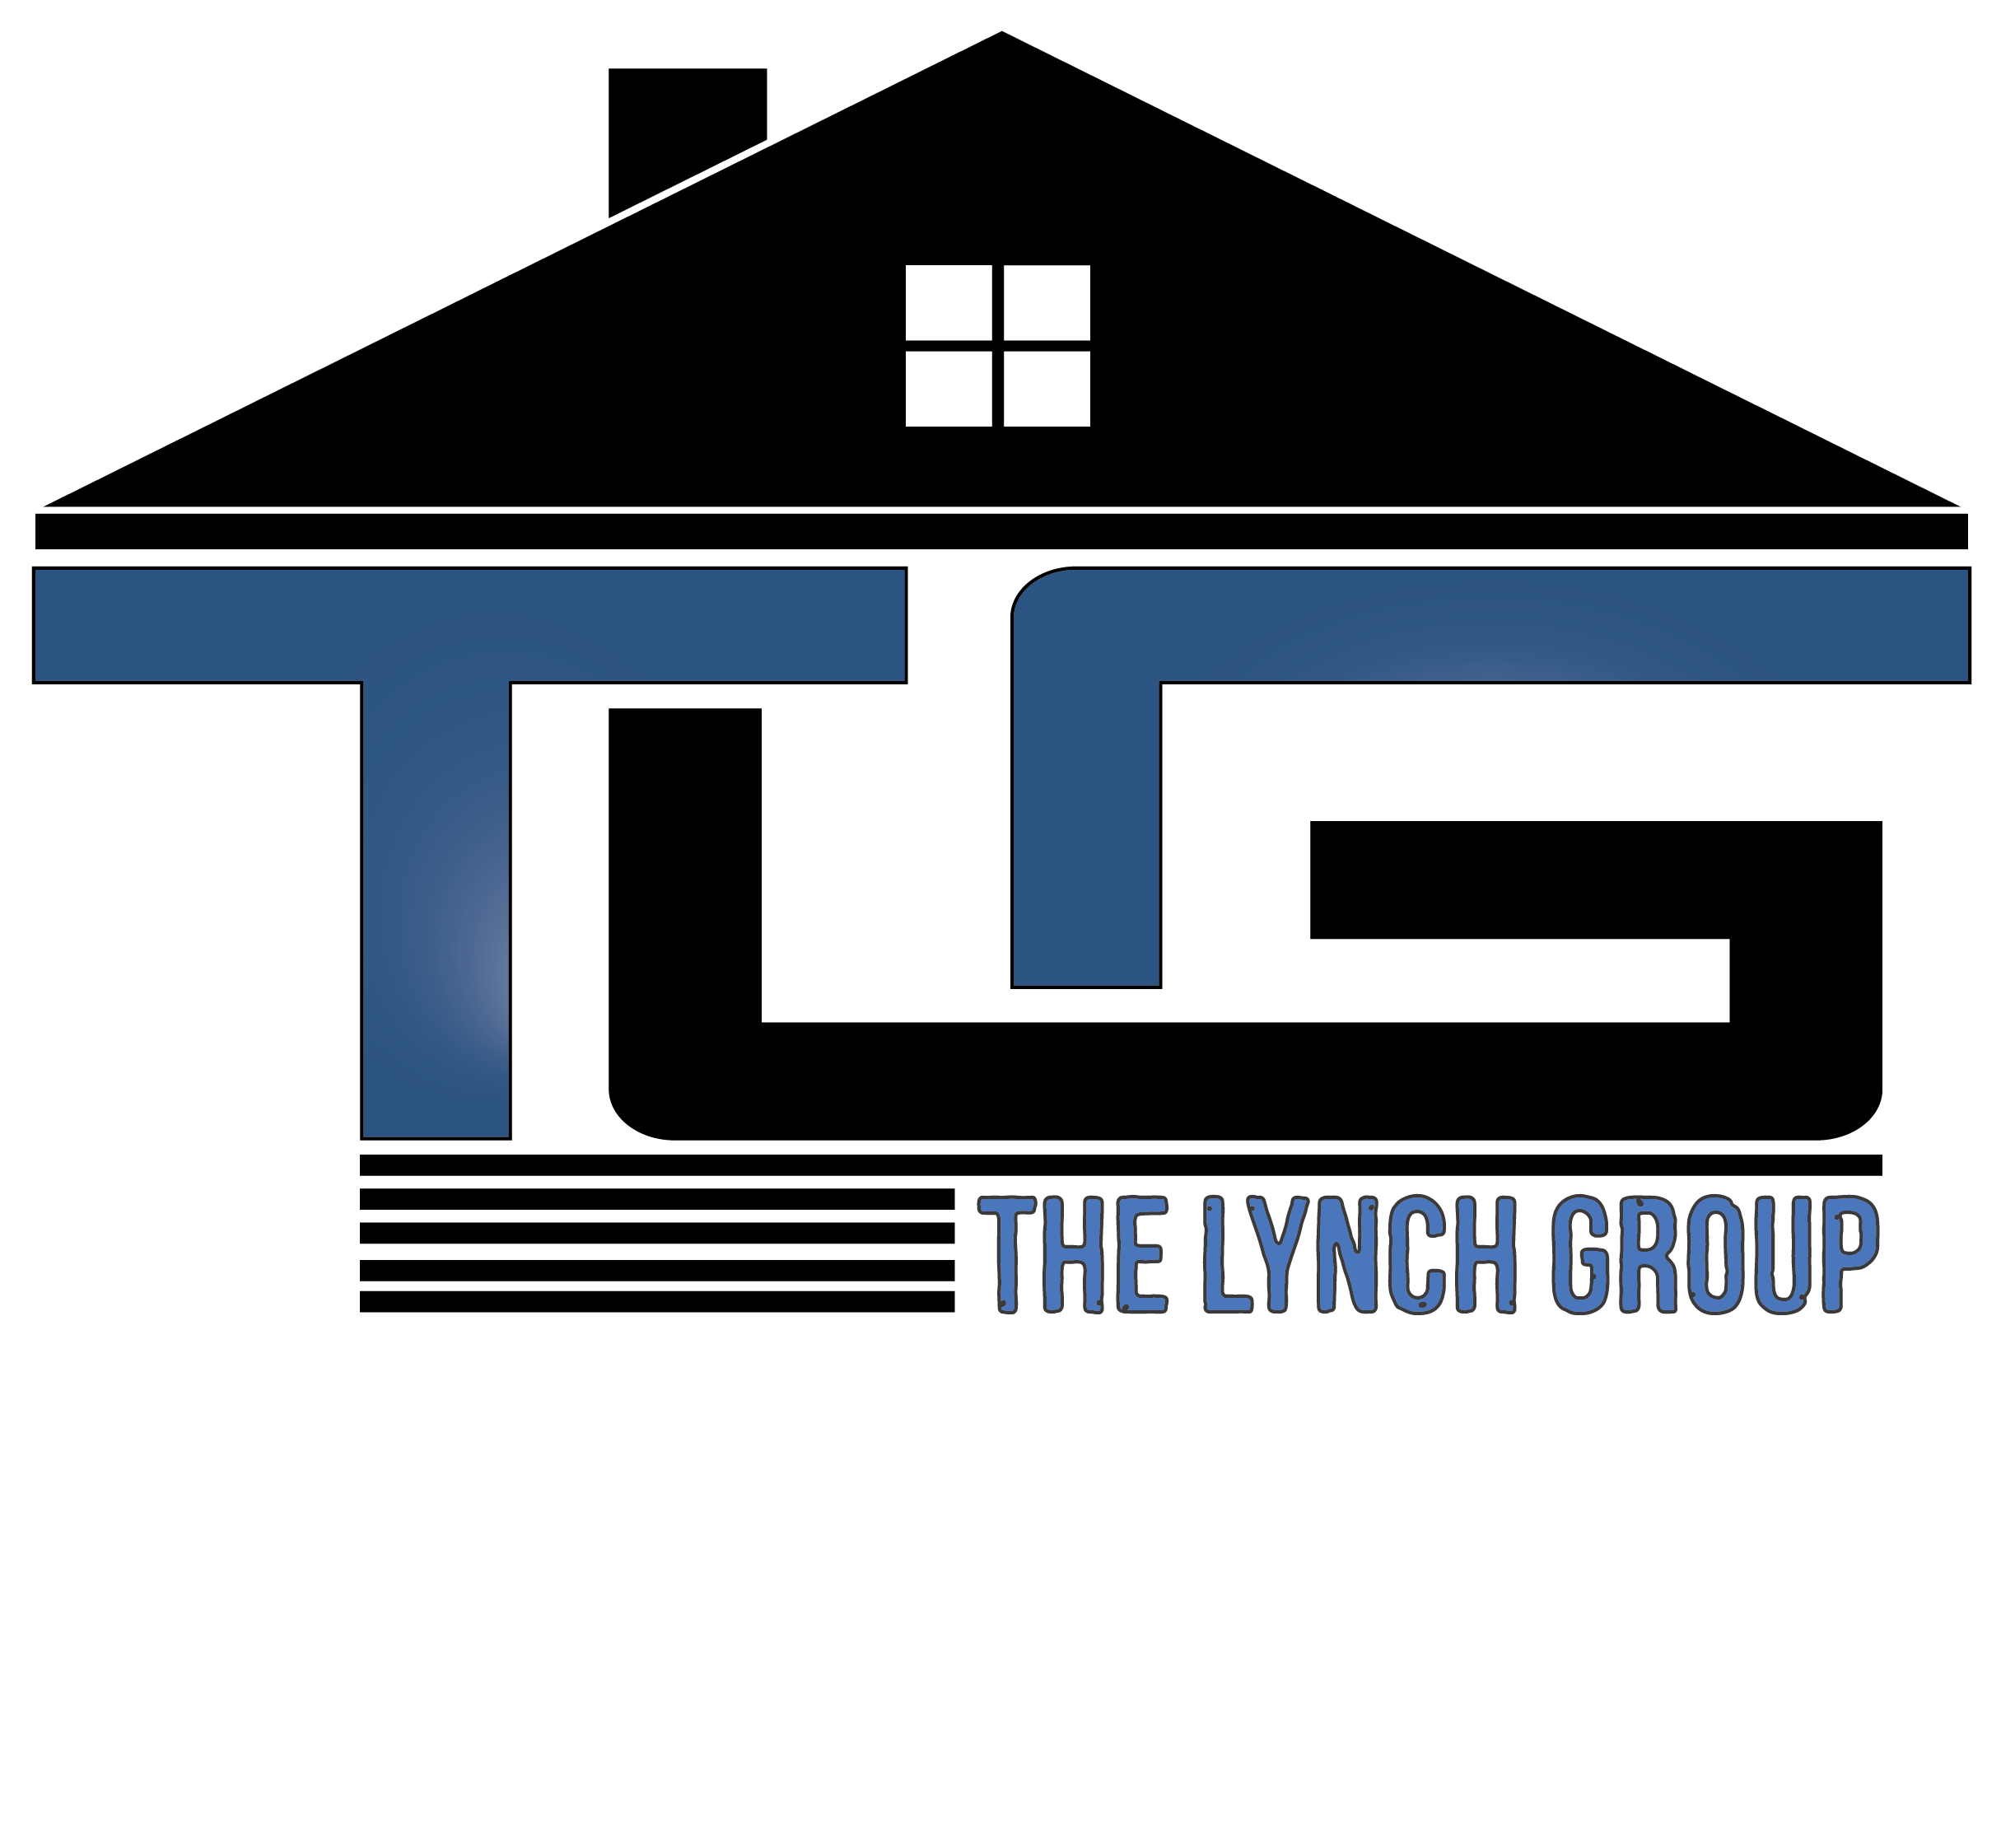 The Lynch Group